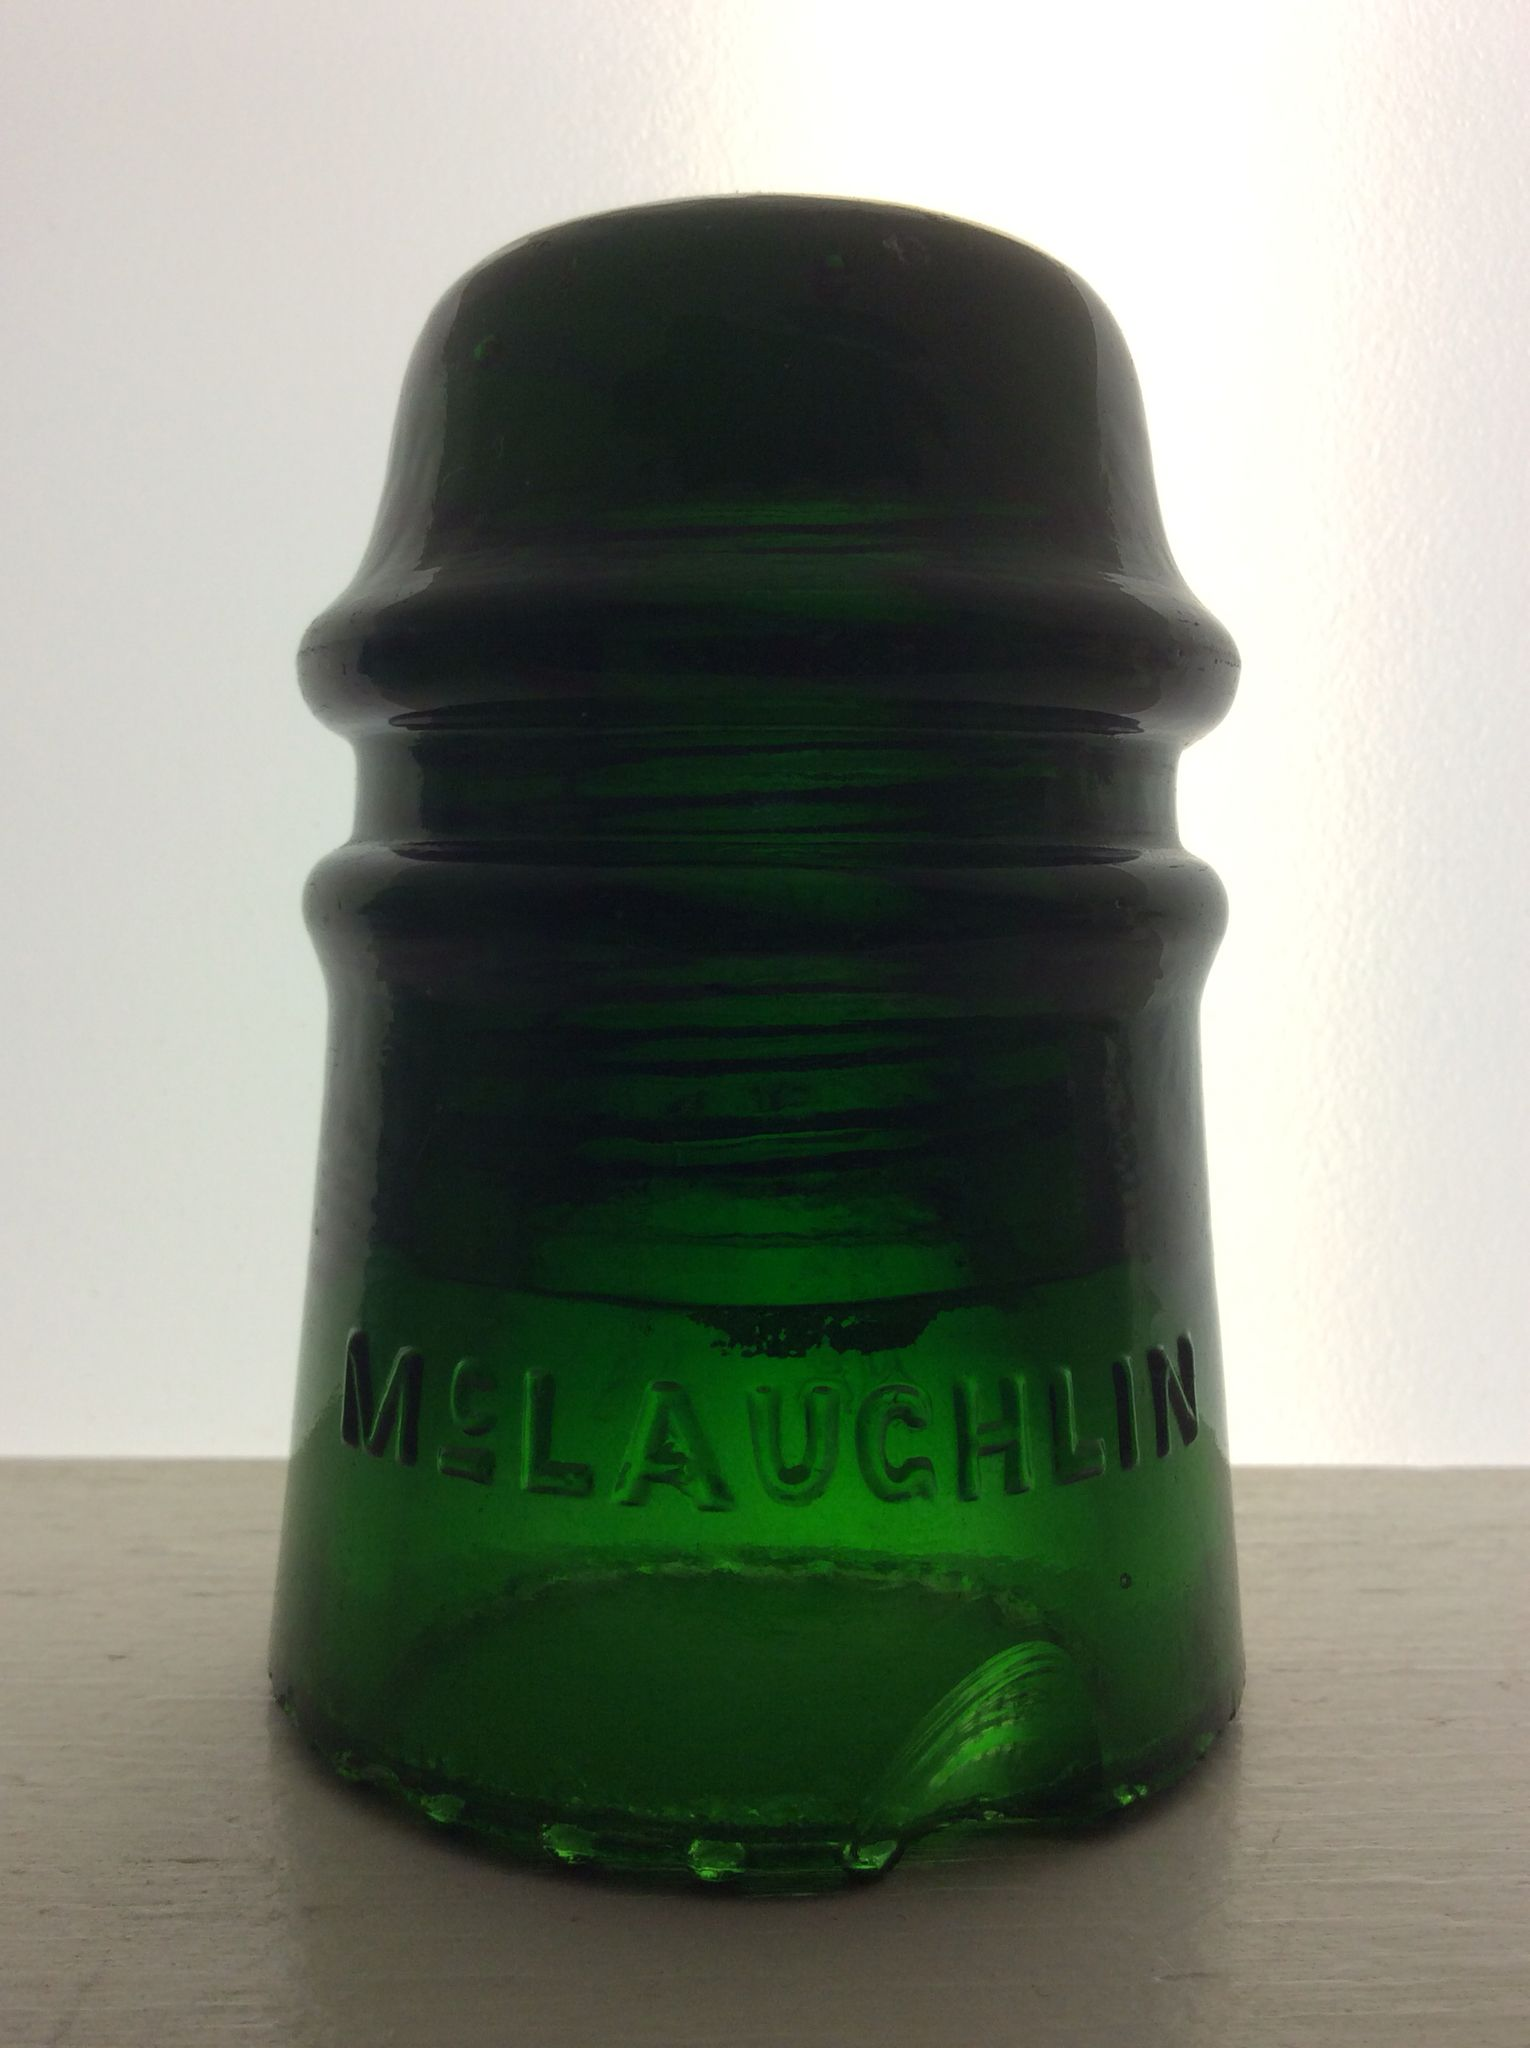 This Is My Cd 121 Mclaughlin 16 Gl Insulator In Some Shade Of Emerald Green